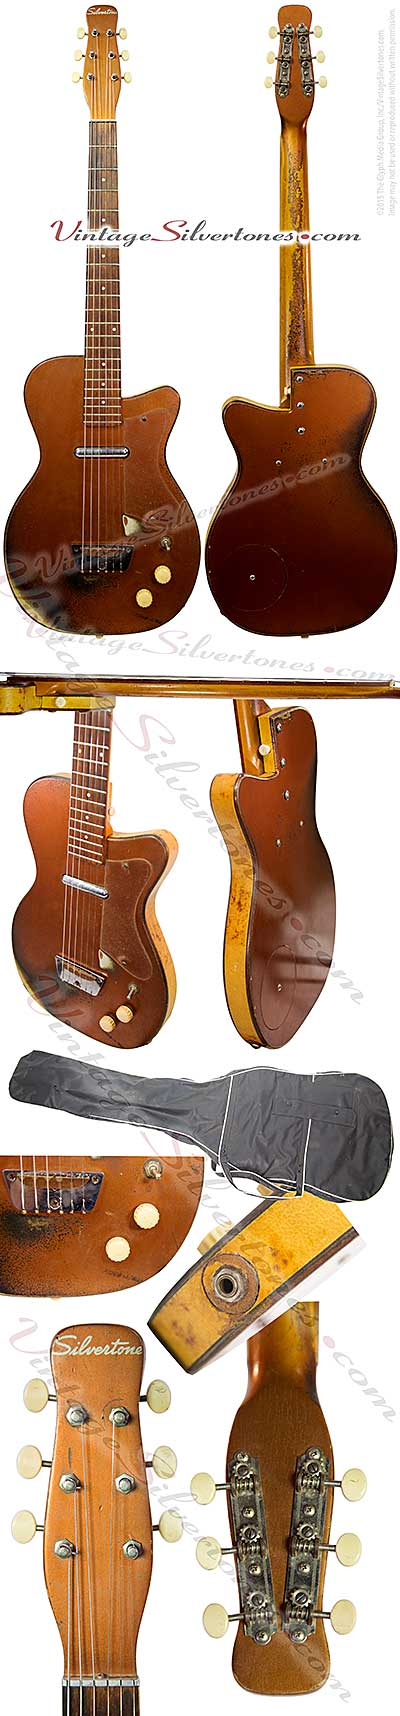 Silvertone 1321 made by Danelectro U1, one pickup, electric guitar, semi-hollow body, bronze body with white tolex binding, masonite body, lipstick pickup, made in 1956